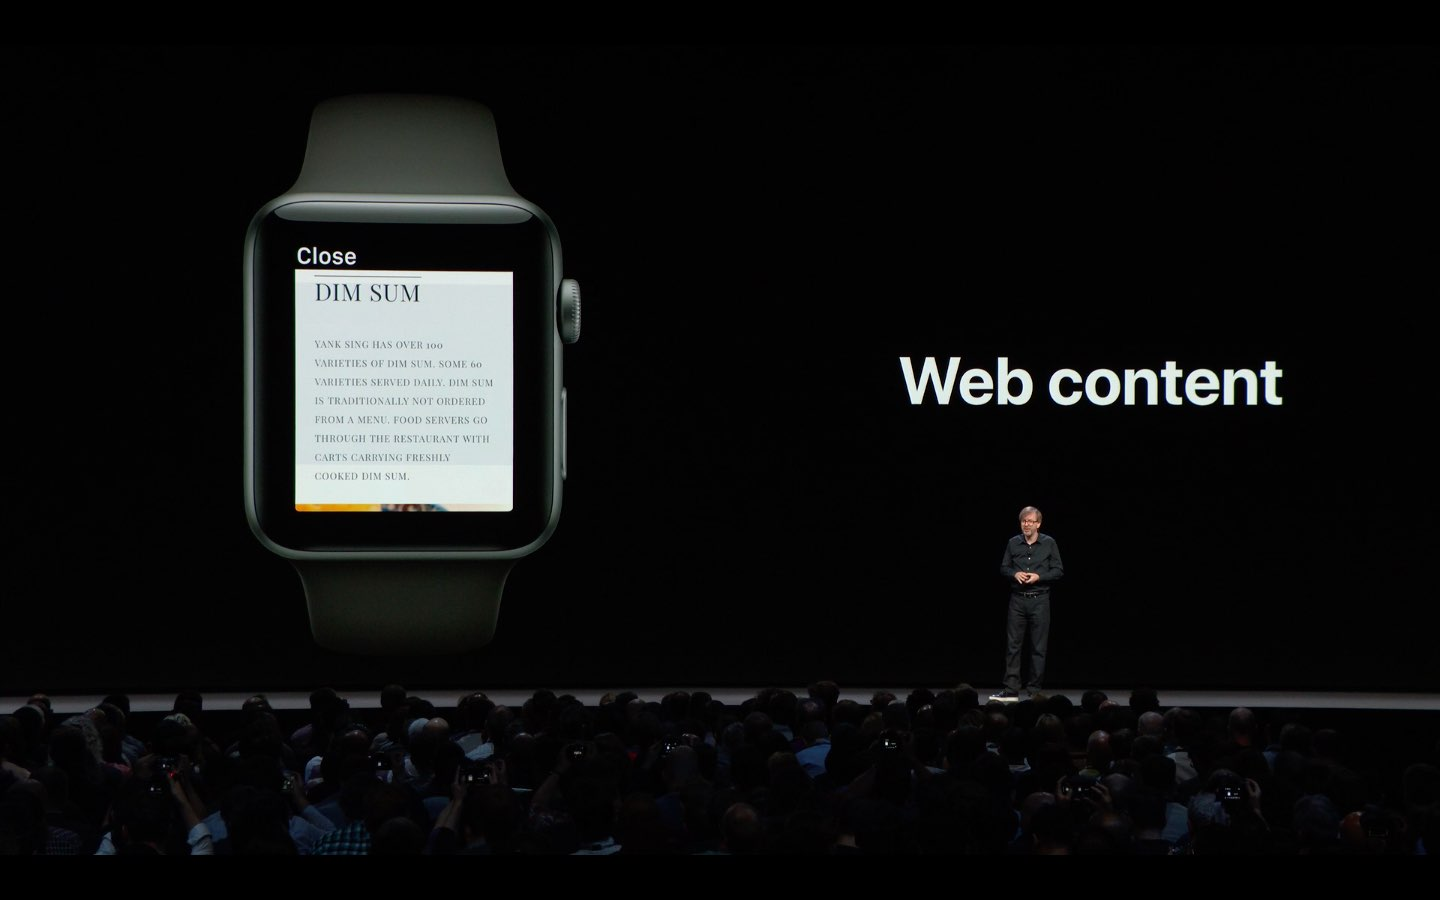 WebKit in watchOS 5 uses Safari's Reader Mode to render web content on your wrist without ads and other distractions